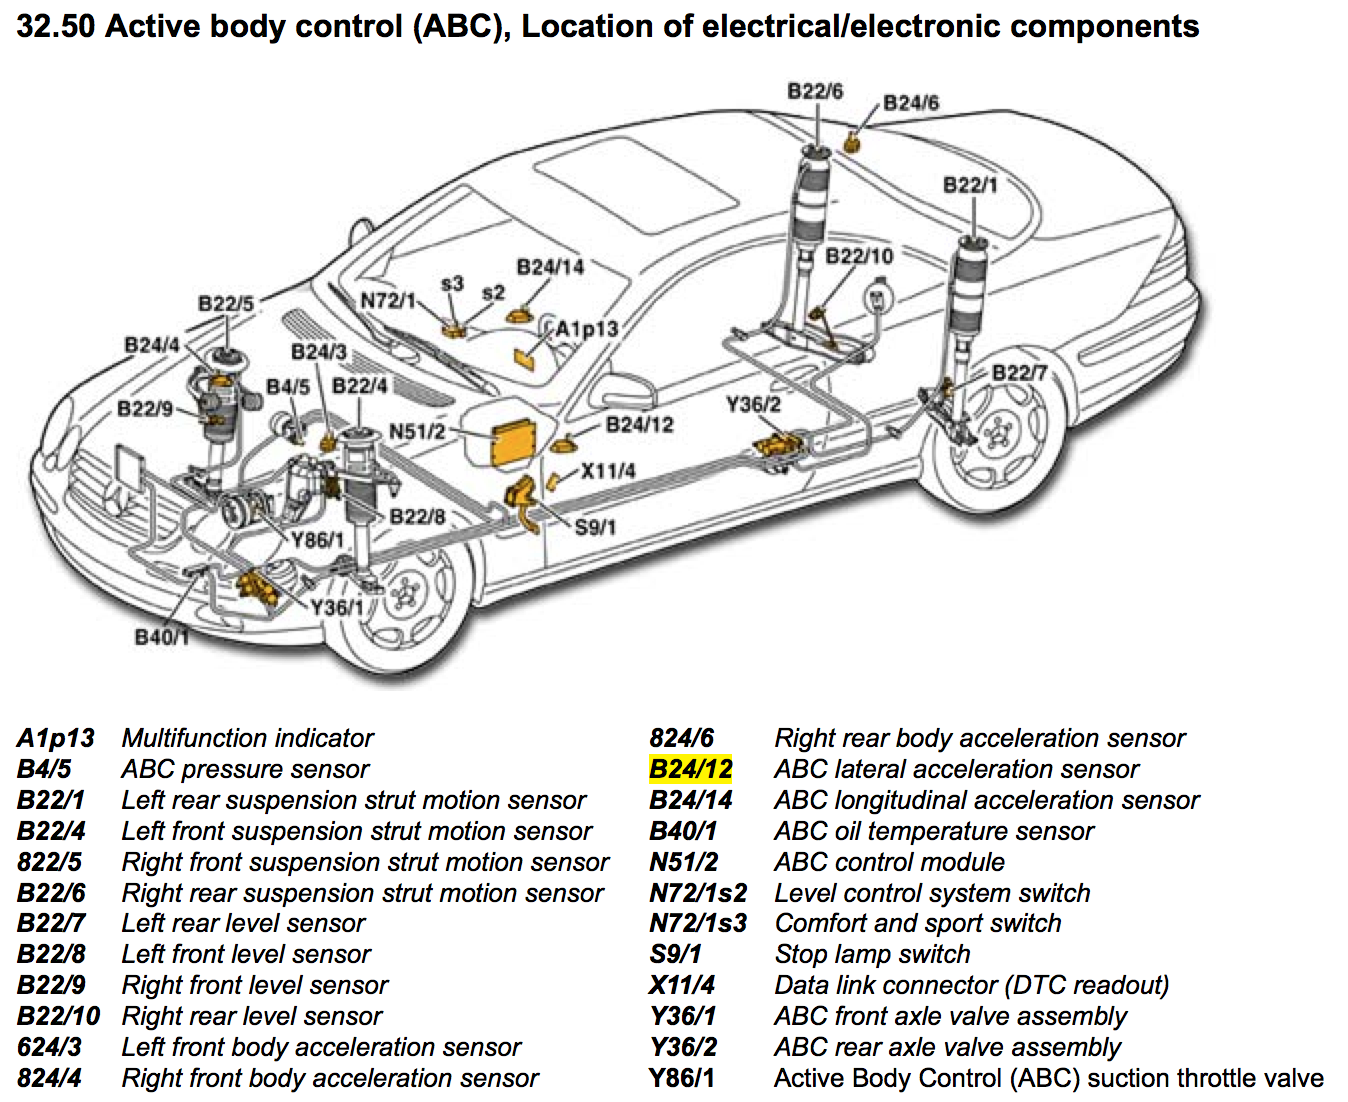 4zbll Lincoln Towncar Online Find Simple Explanation together with 31050 Denso Alternator Wiring Diagram together with What Is An Ideal Transformer likewise Discussion T3843 ds601284 in addition Overview Abc System Isthe Key Part Of. on compressor diagram